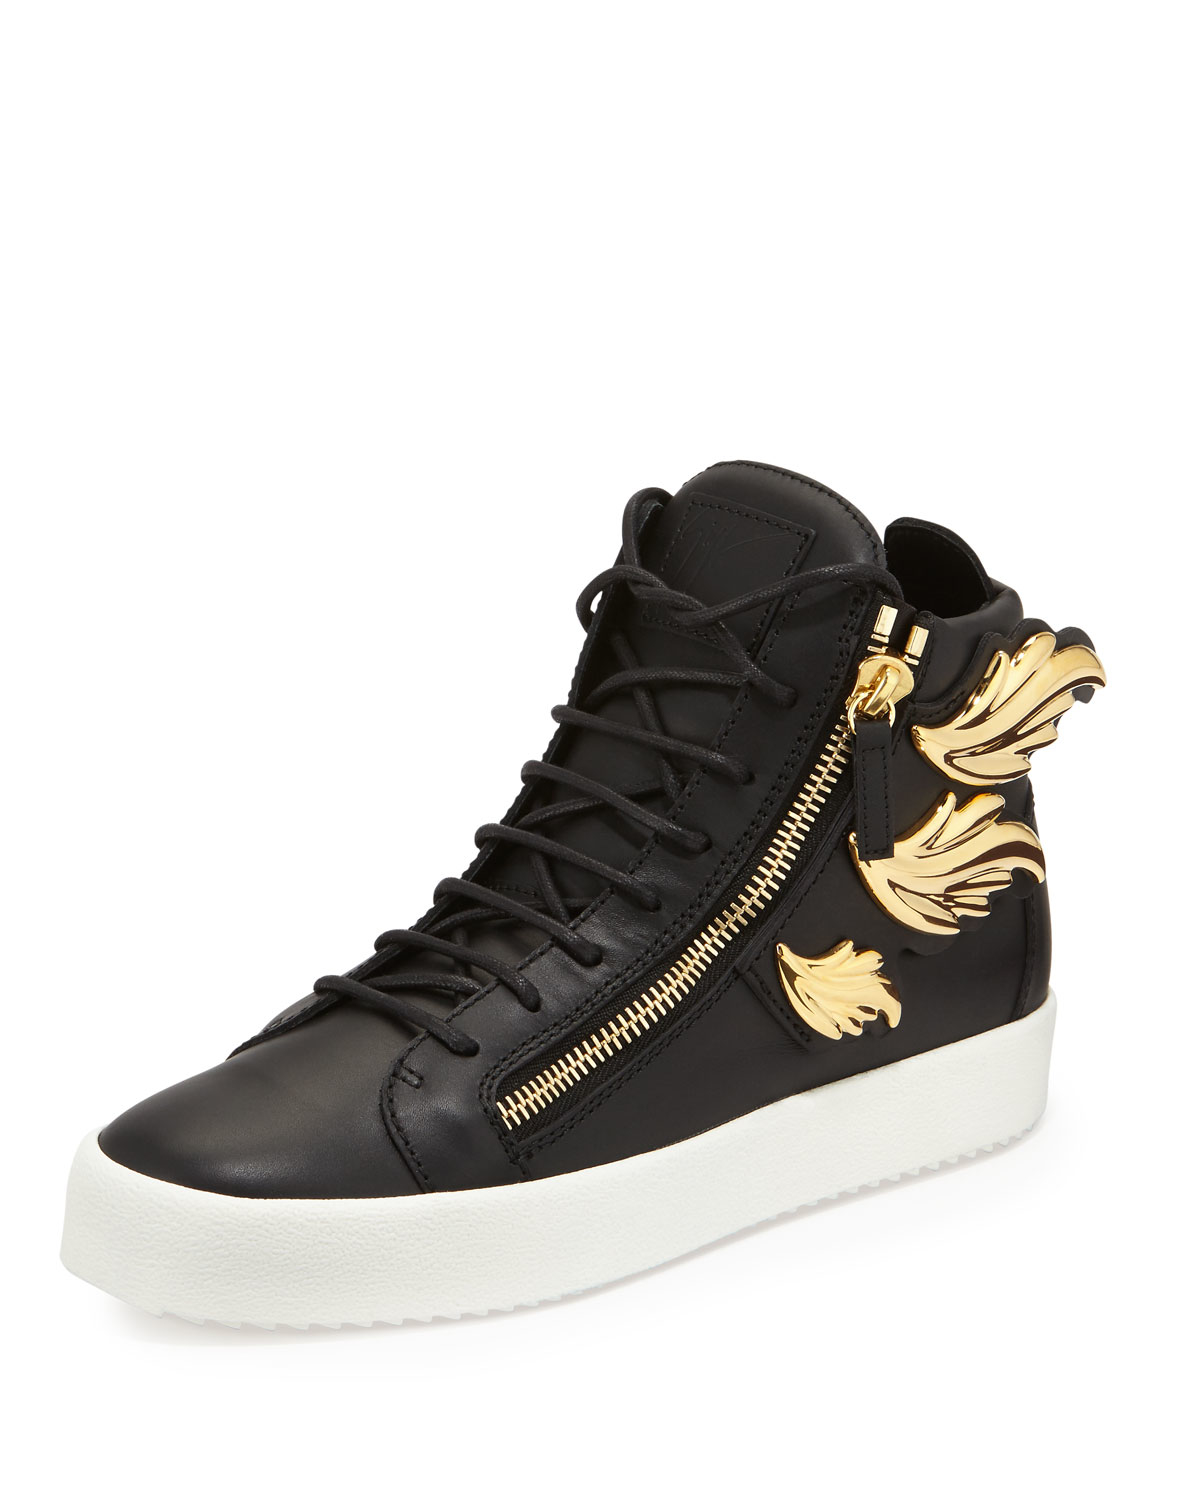 giuseppe zanotti gz men high-top shoes sneakers